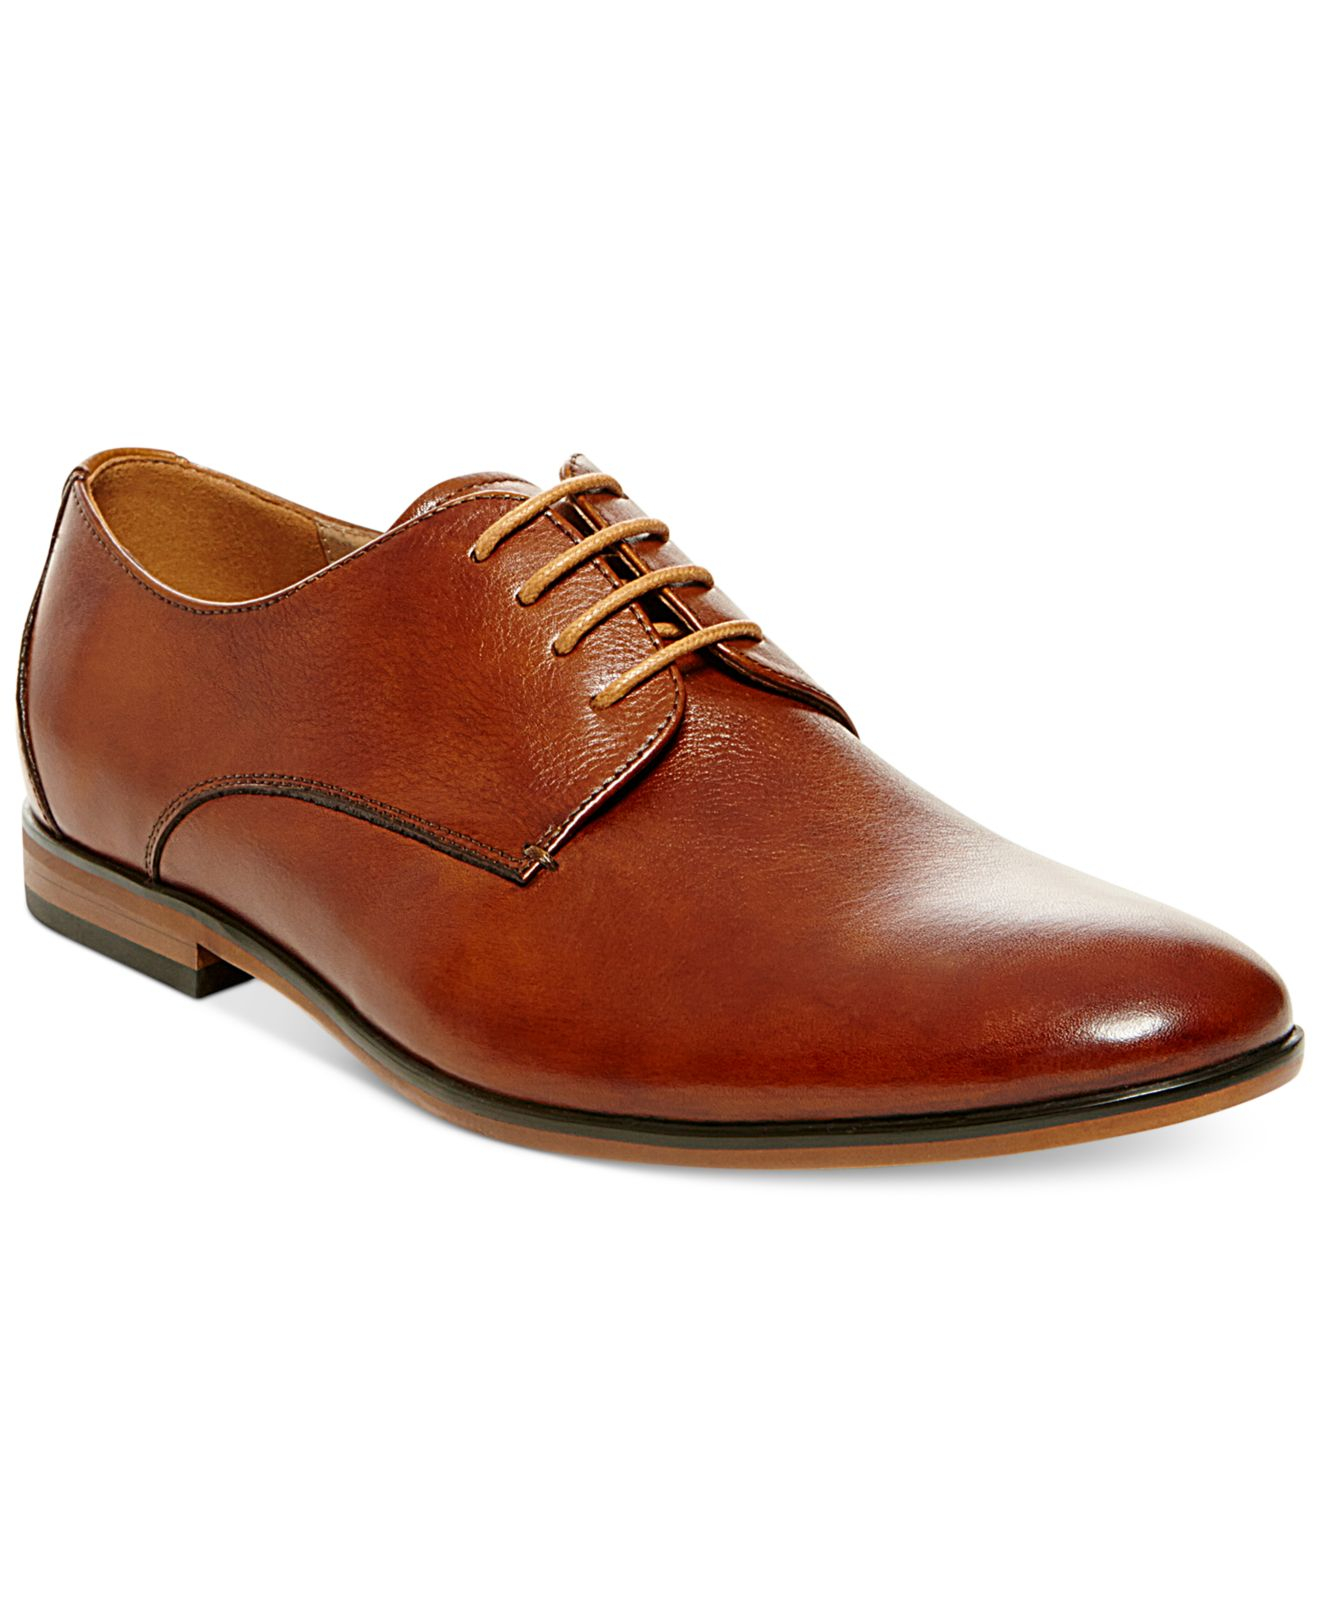 Brooks Dress Shoes